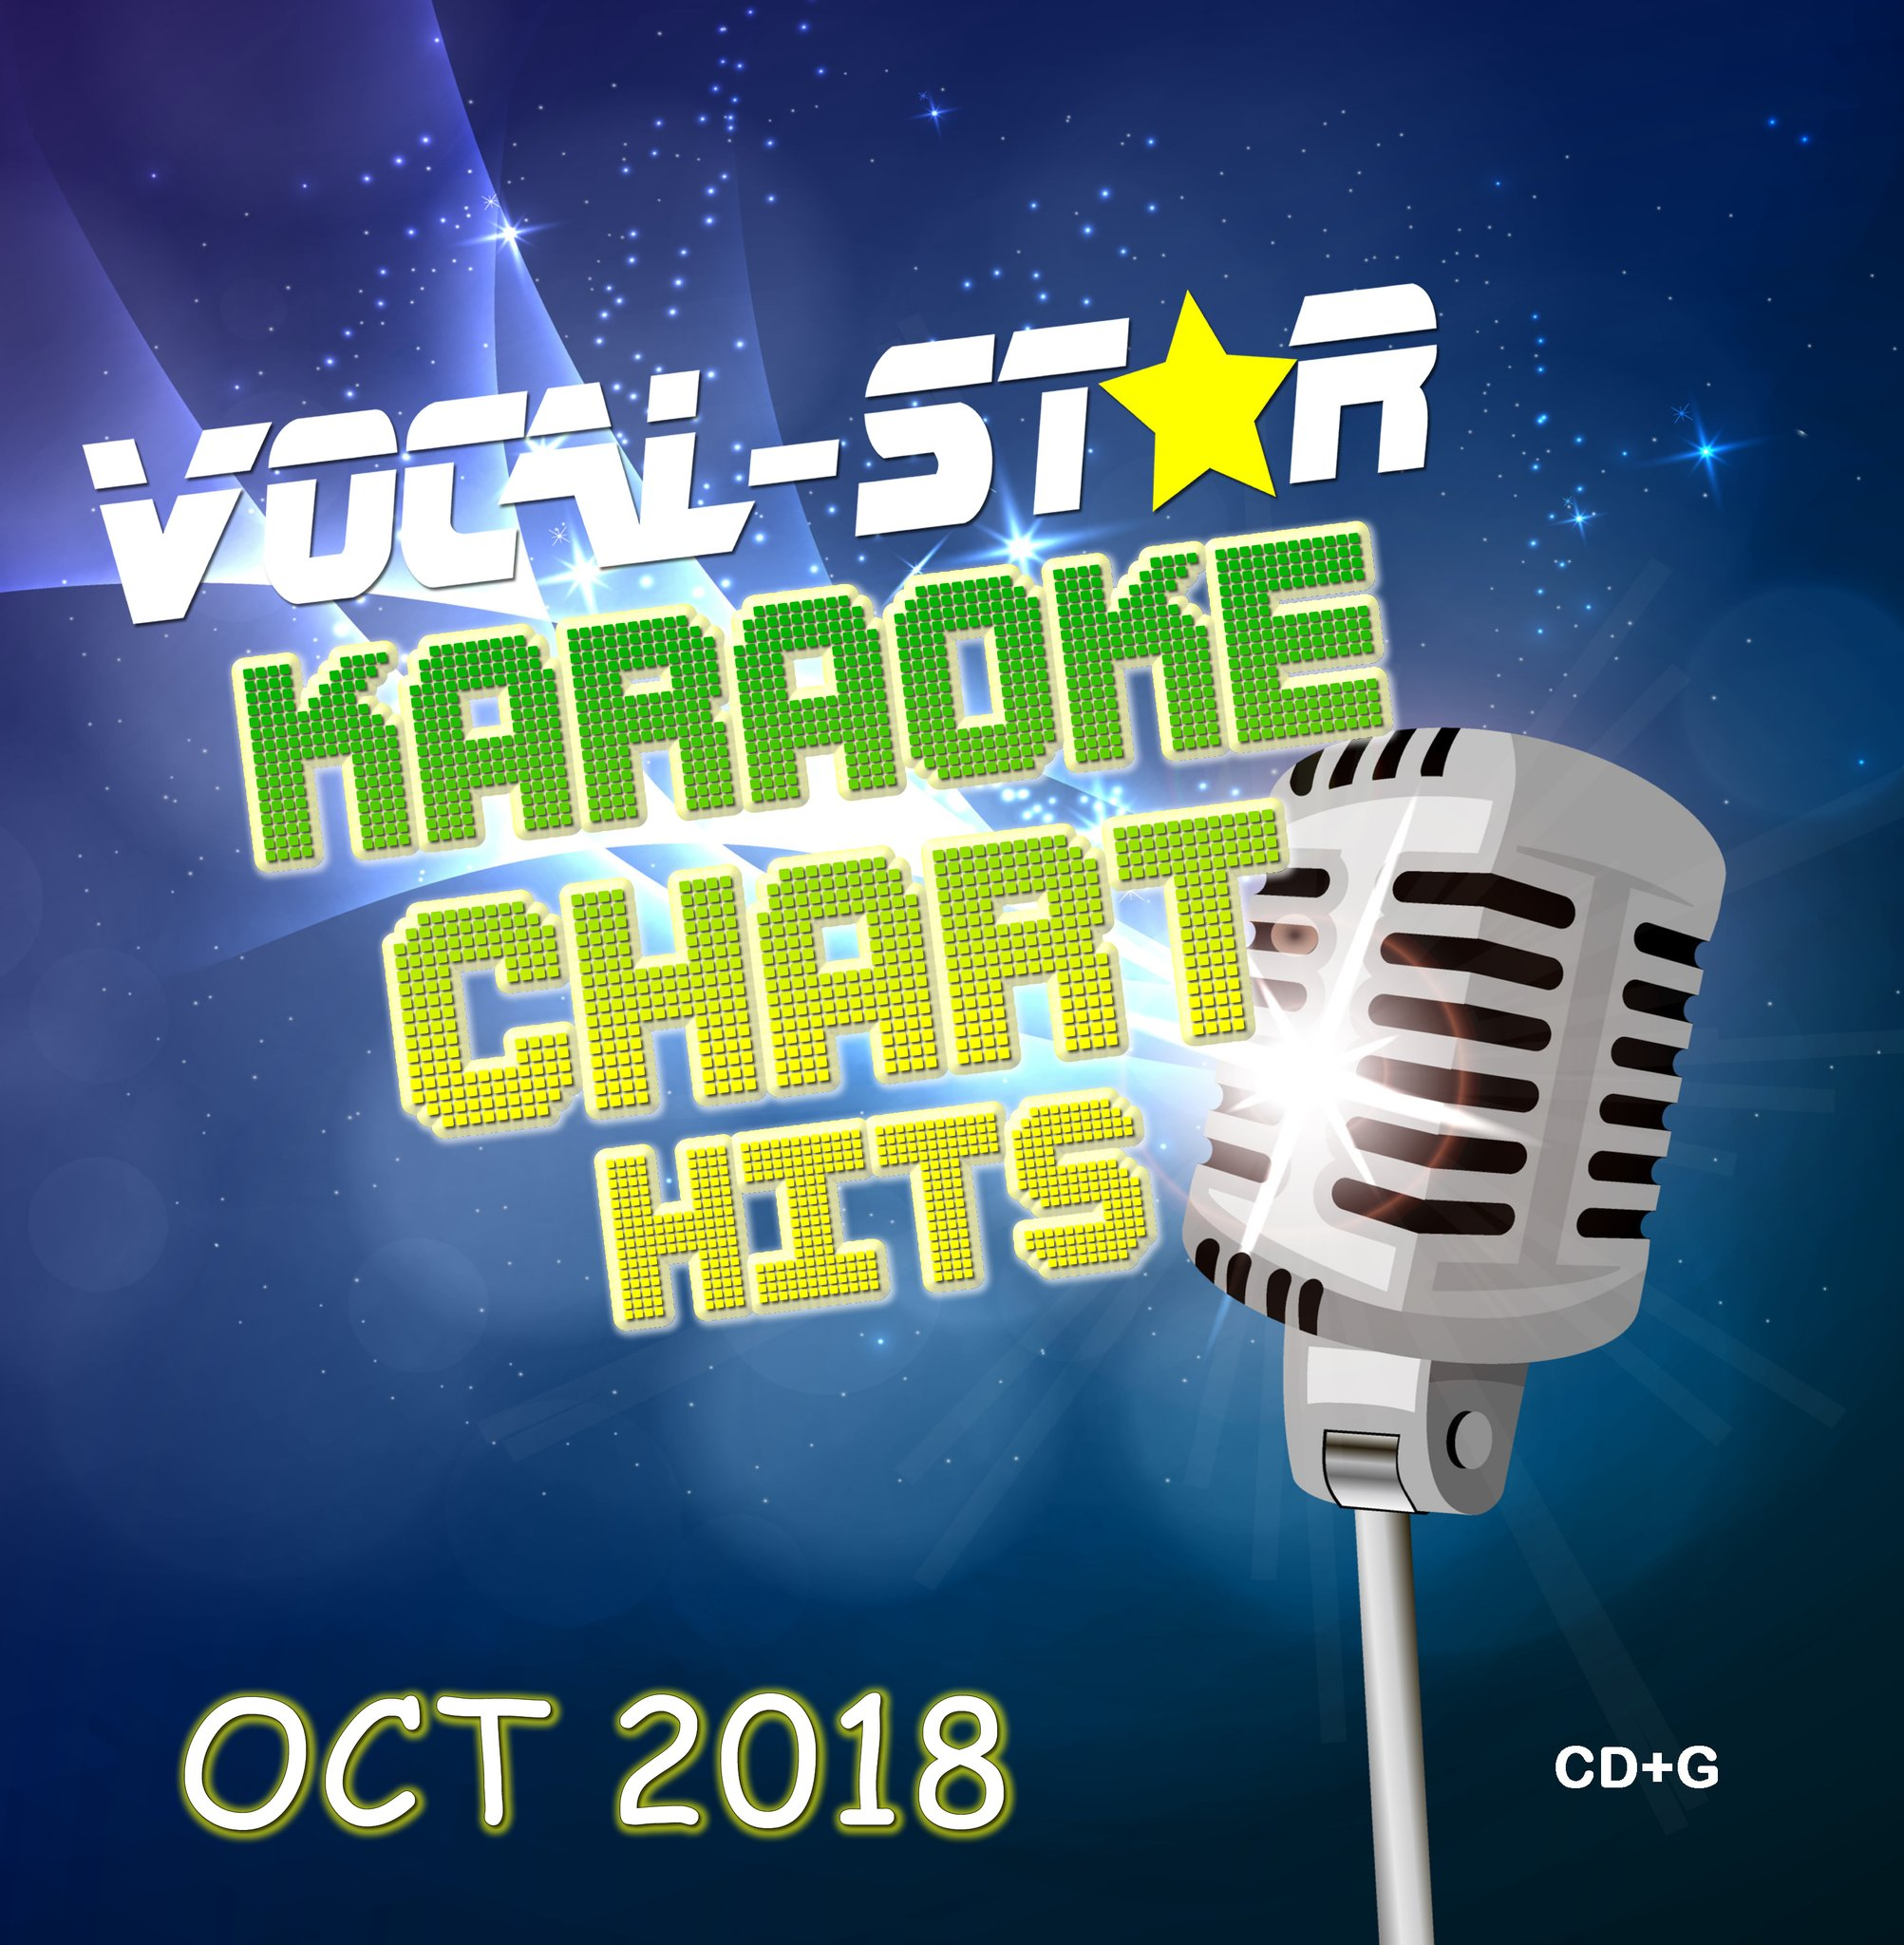 Vocal-Star October 2018 Hits - CD+G Disc